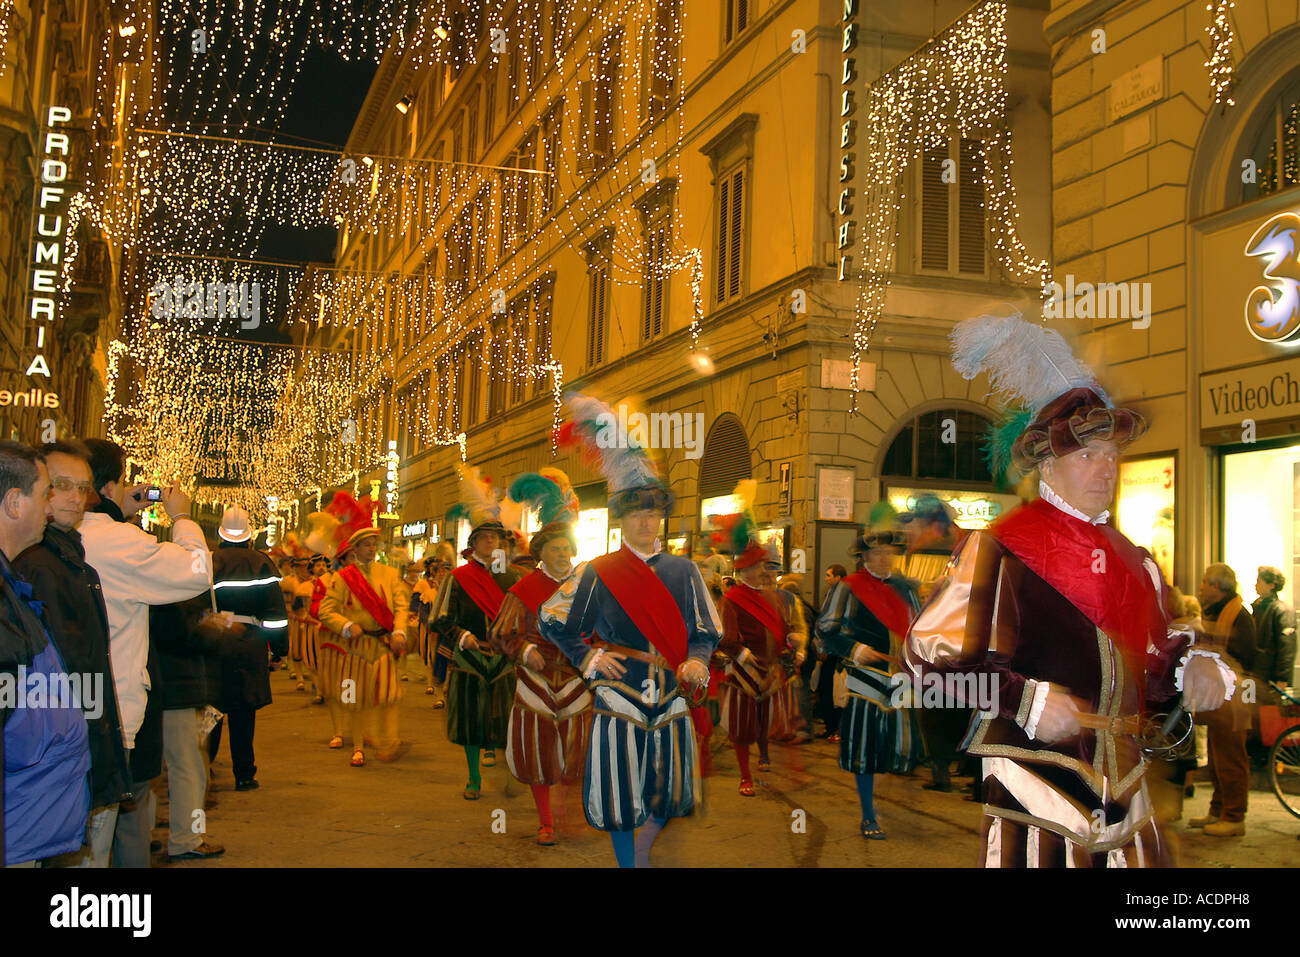 Christmas In Florence Italy.Christmas Shopping Florence Italy Stock Photo 7500183 Alamy